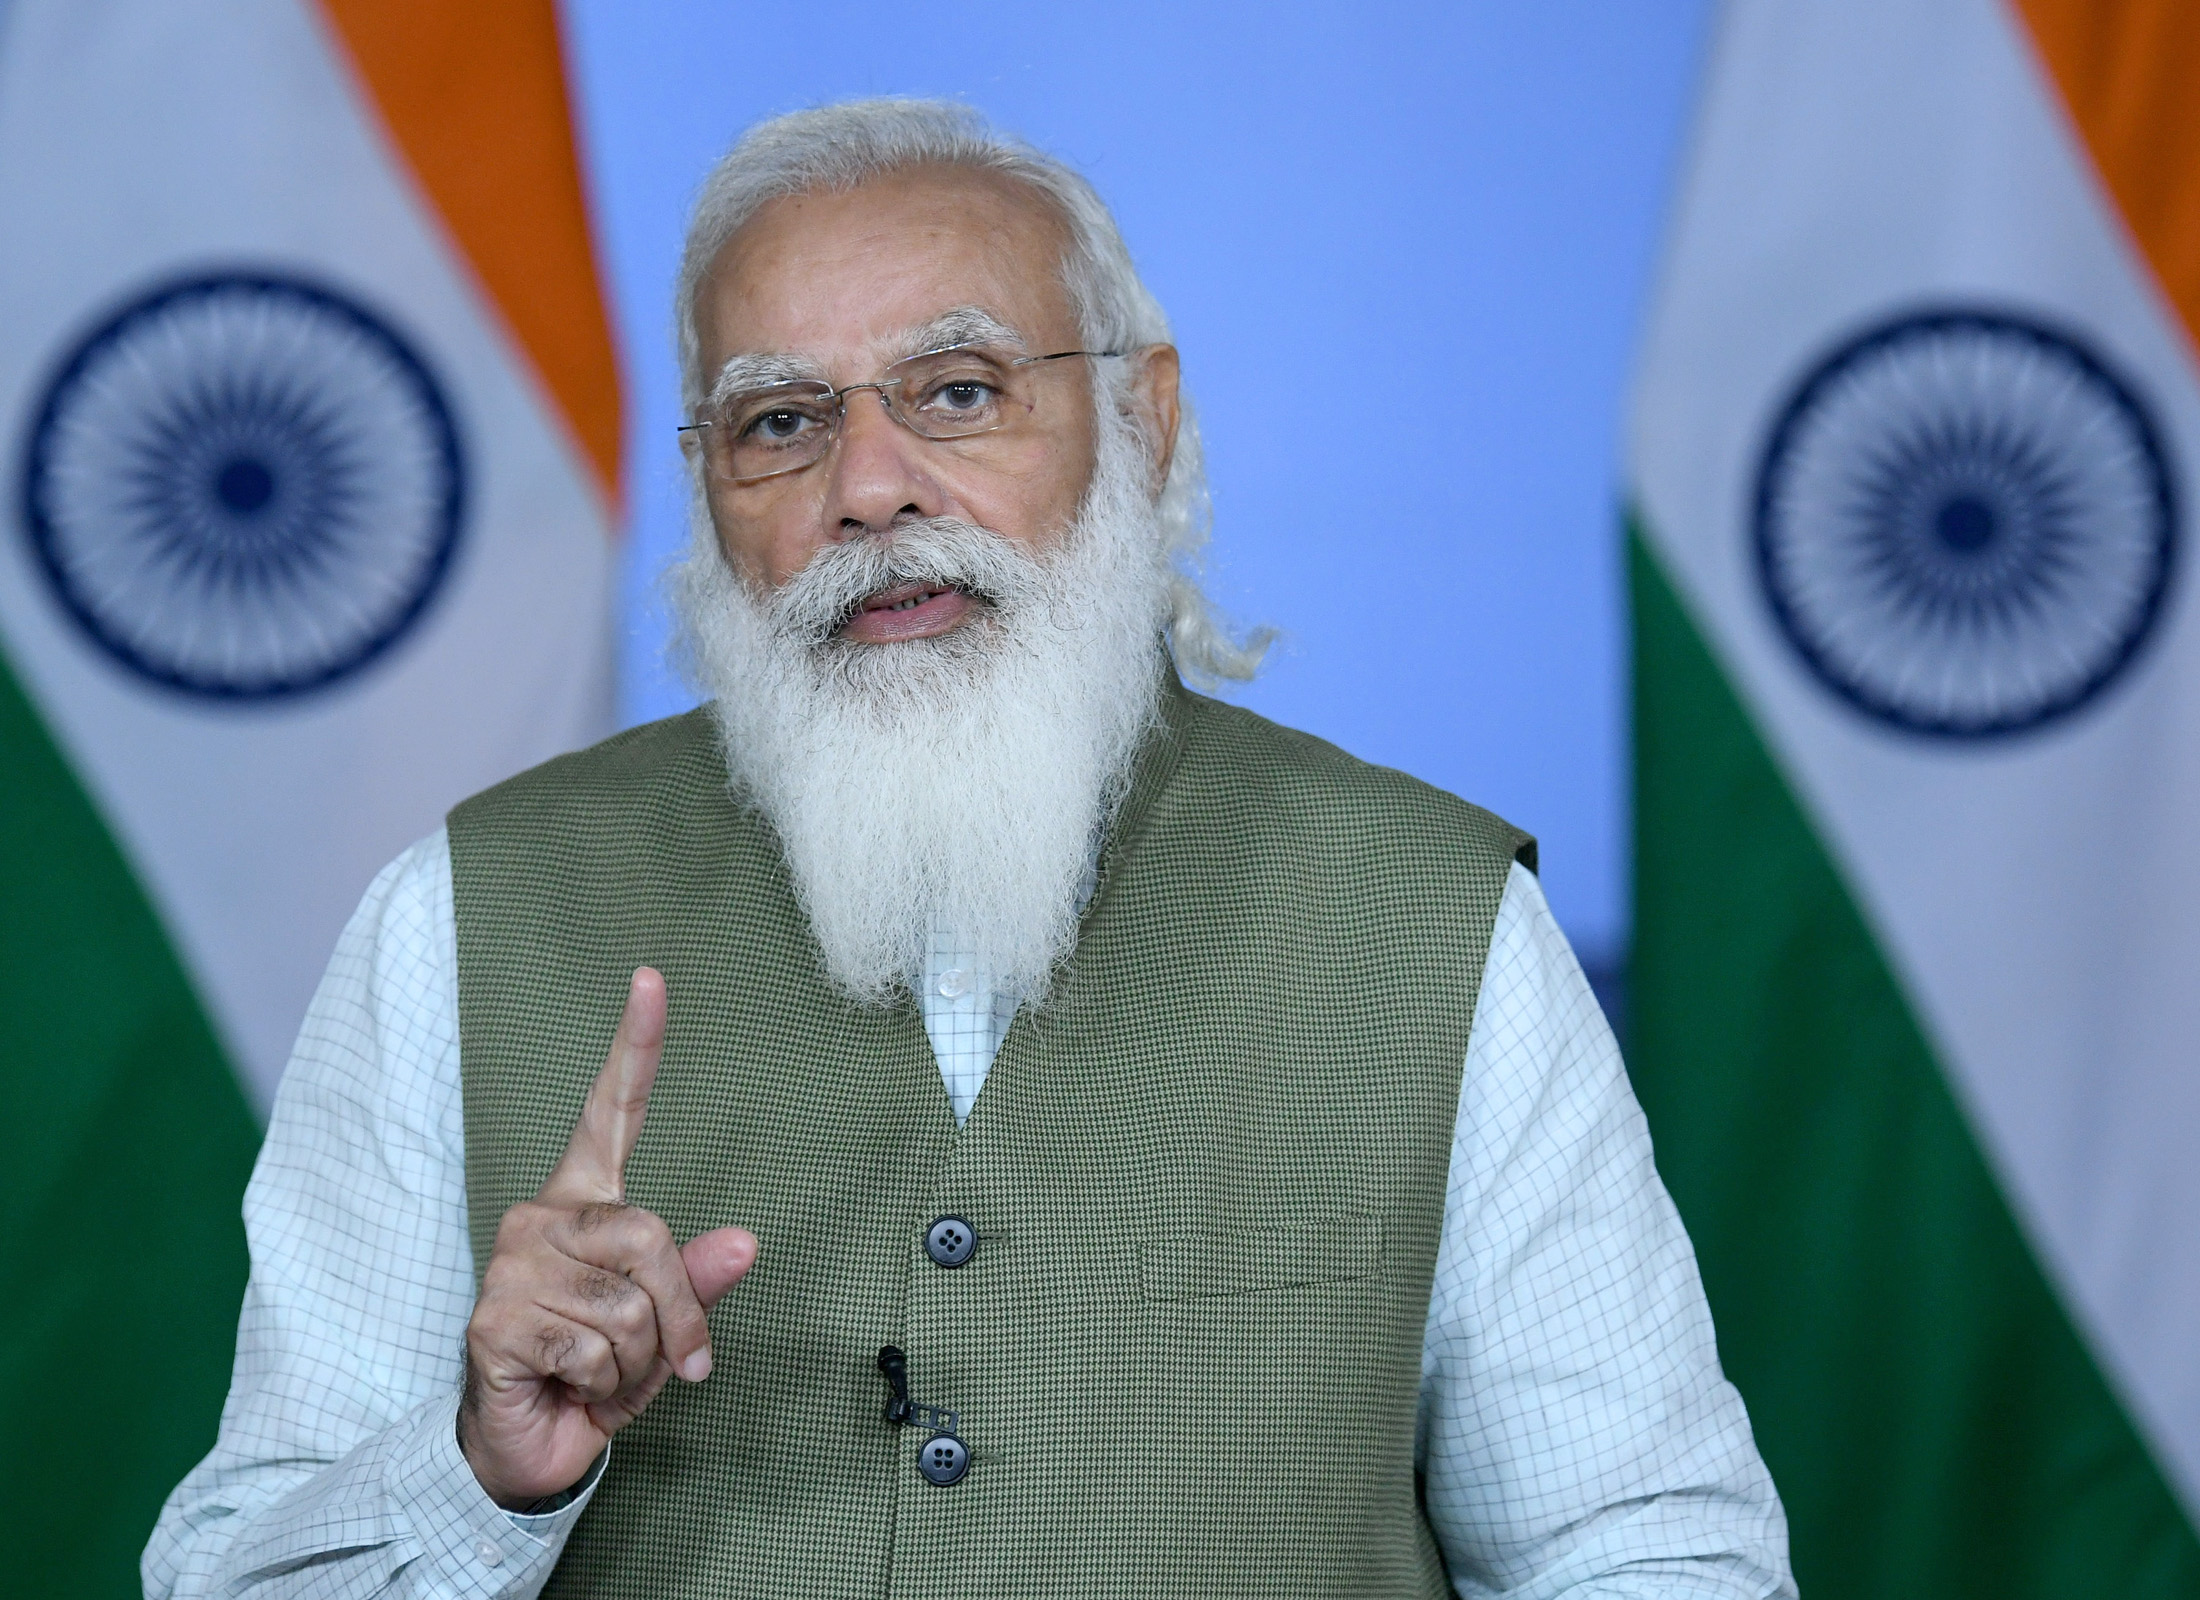 'Reforms by conviction and incentives' have replaced 'reforms by stealth': PM